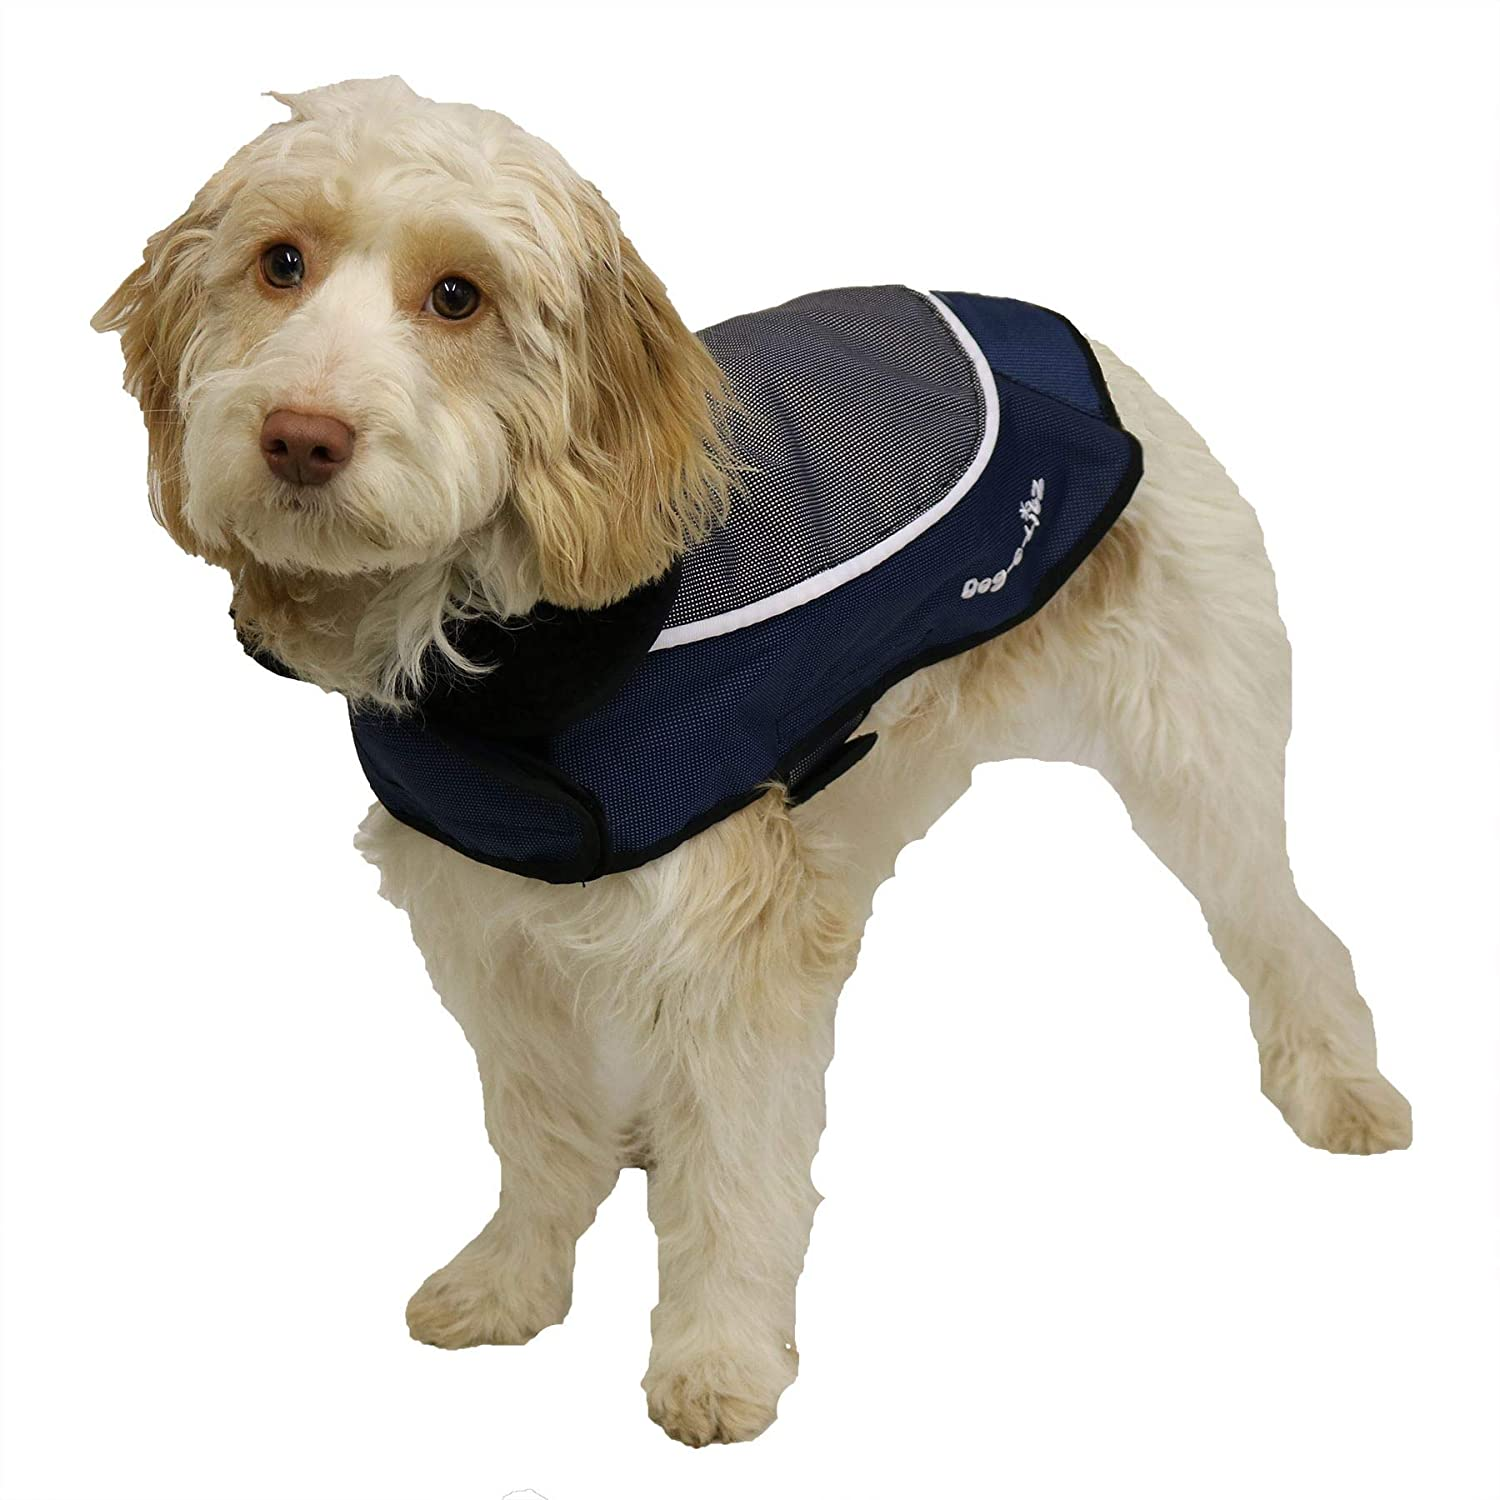 Luxury Night Bright bluee LED Reflective Dog Coat Jacket 12  (Small)